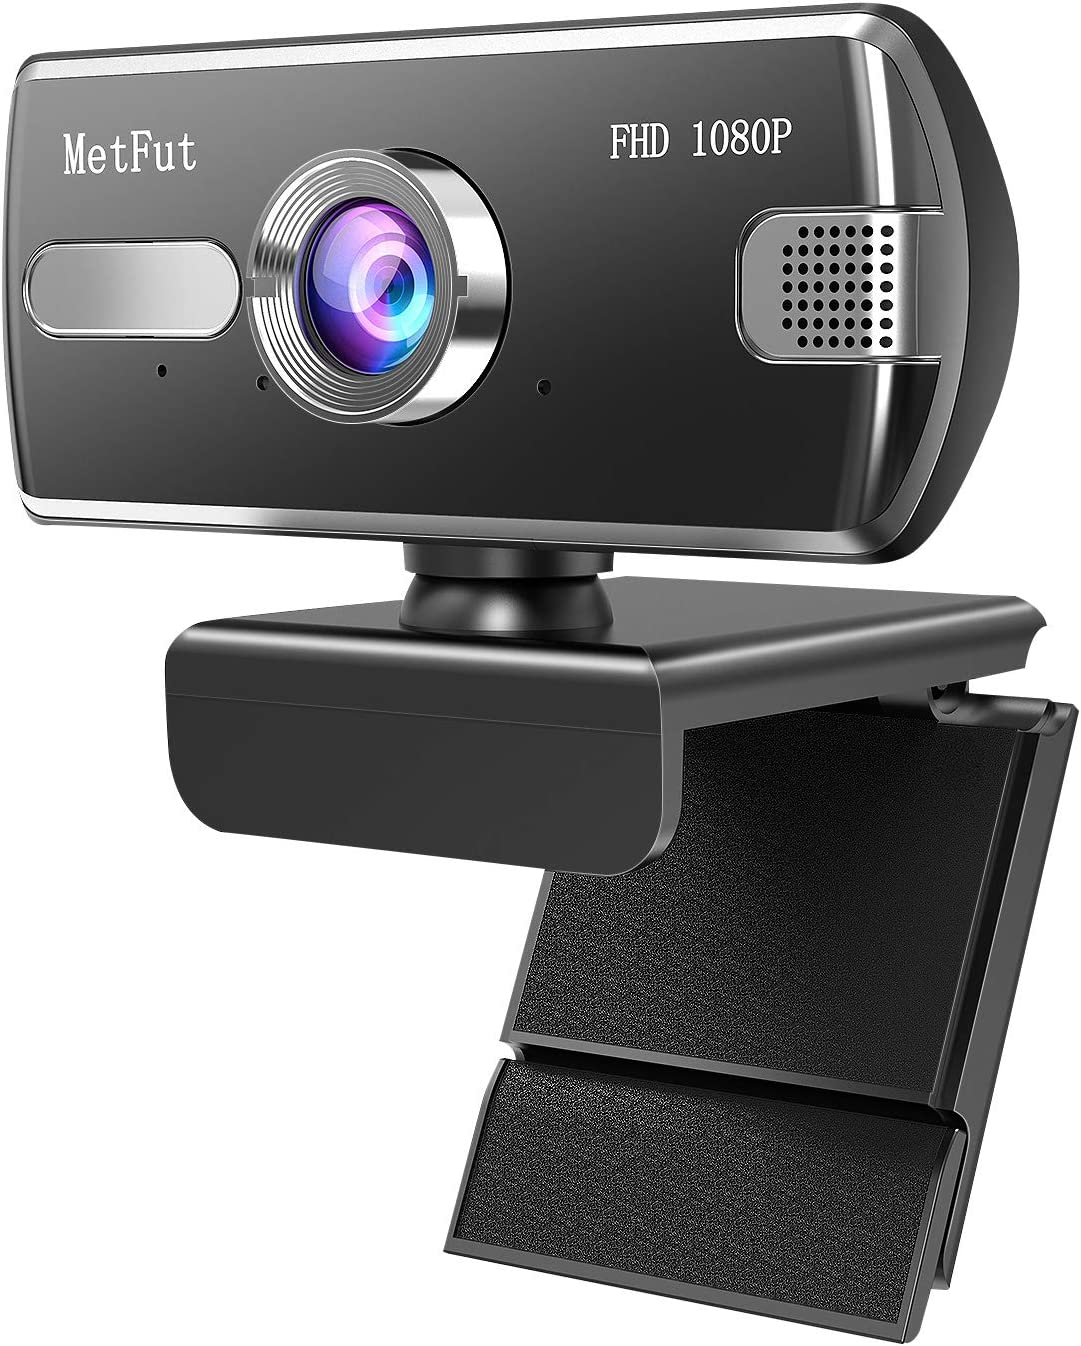 MetFut Webcam with Microphone, USB Plug and Play, Auto Focus 1080P HD Computer Camera for PC MAC Laptop Desktop, Streaming Web Camera for Skype,YouTube, Live Broadcast Video Conference